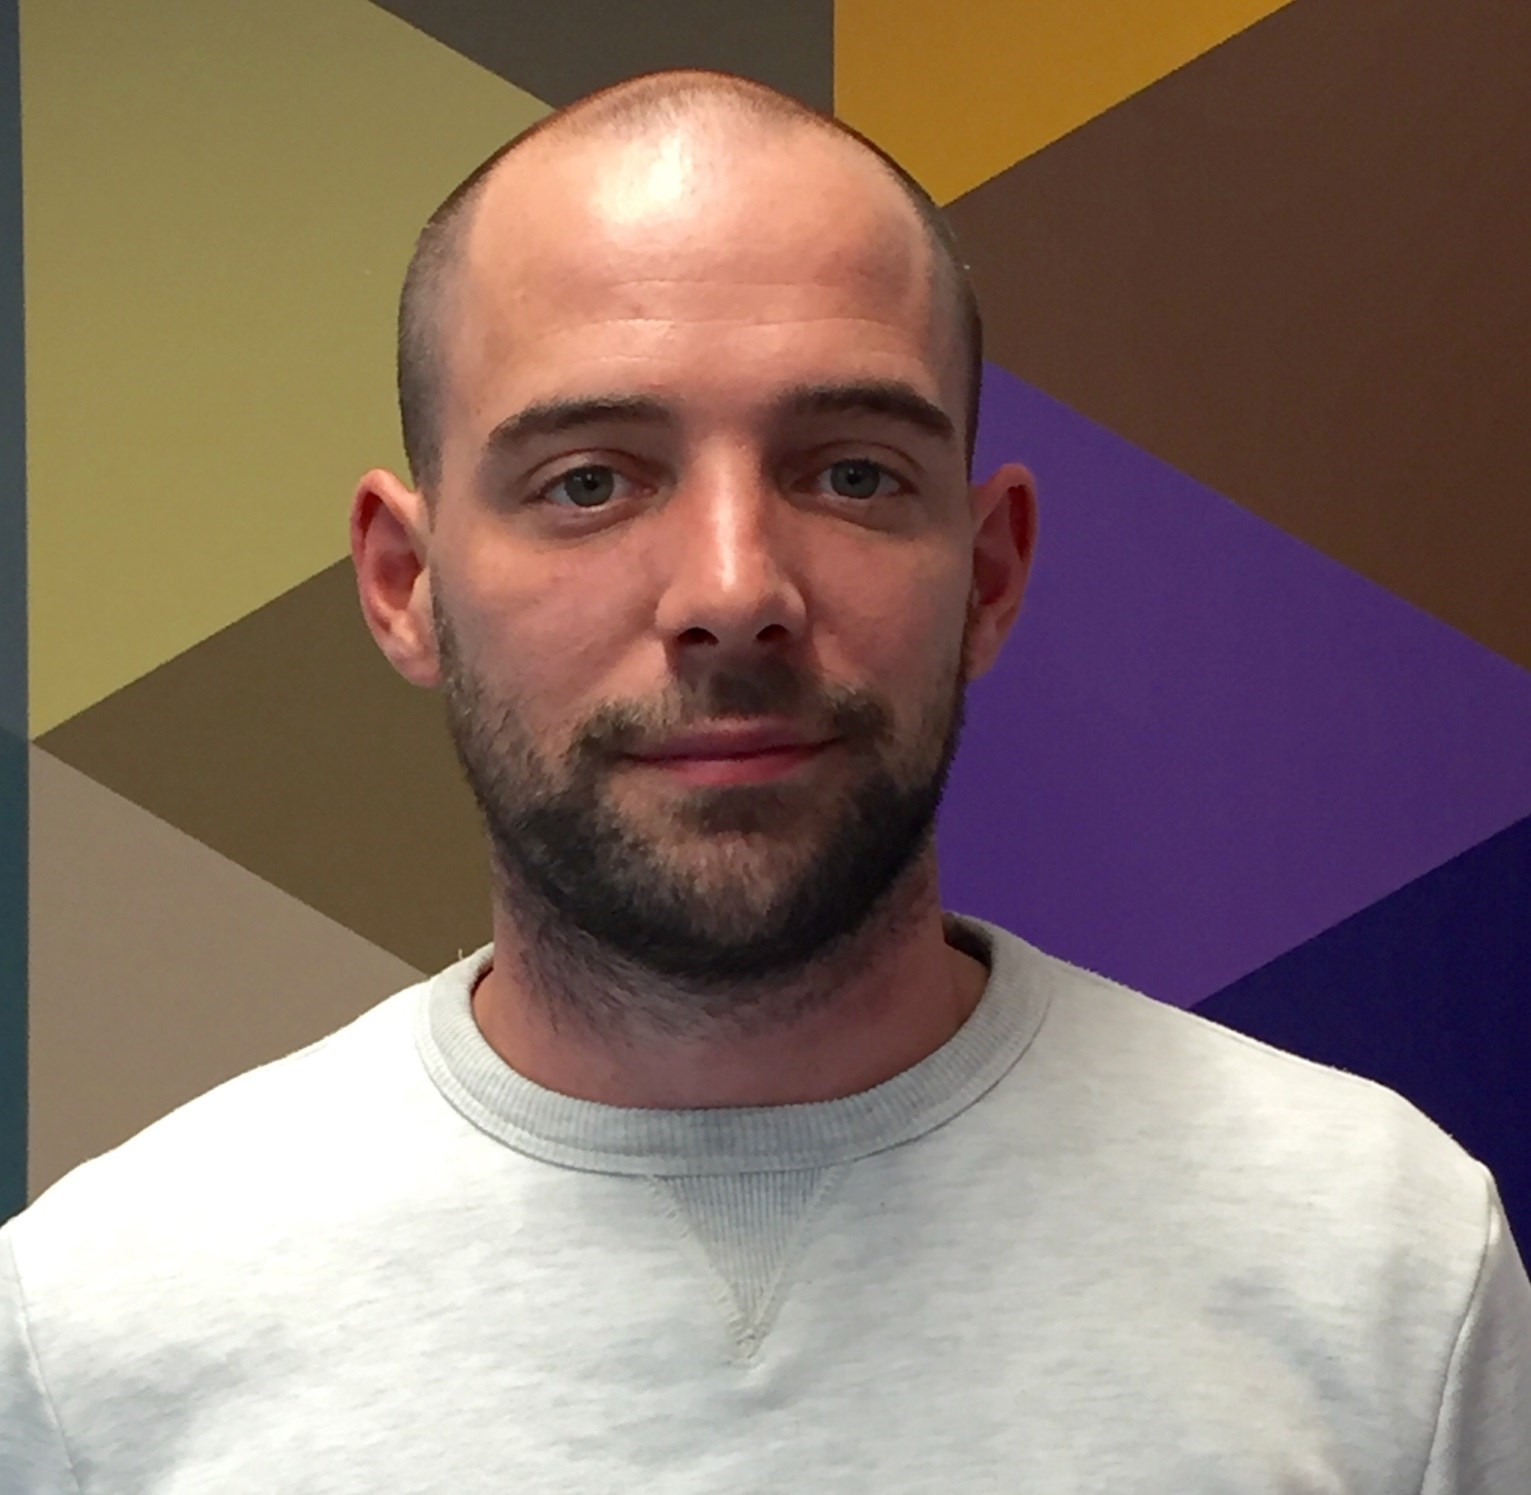 Neil Monahan is a marketing manager at Brandworkz